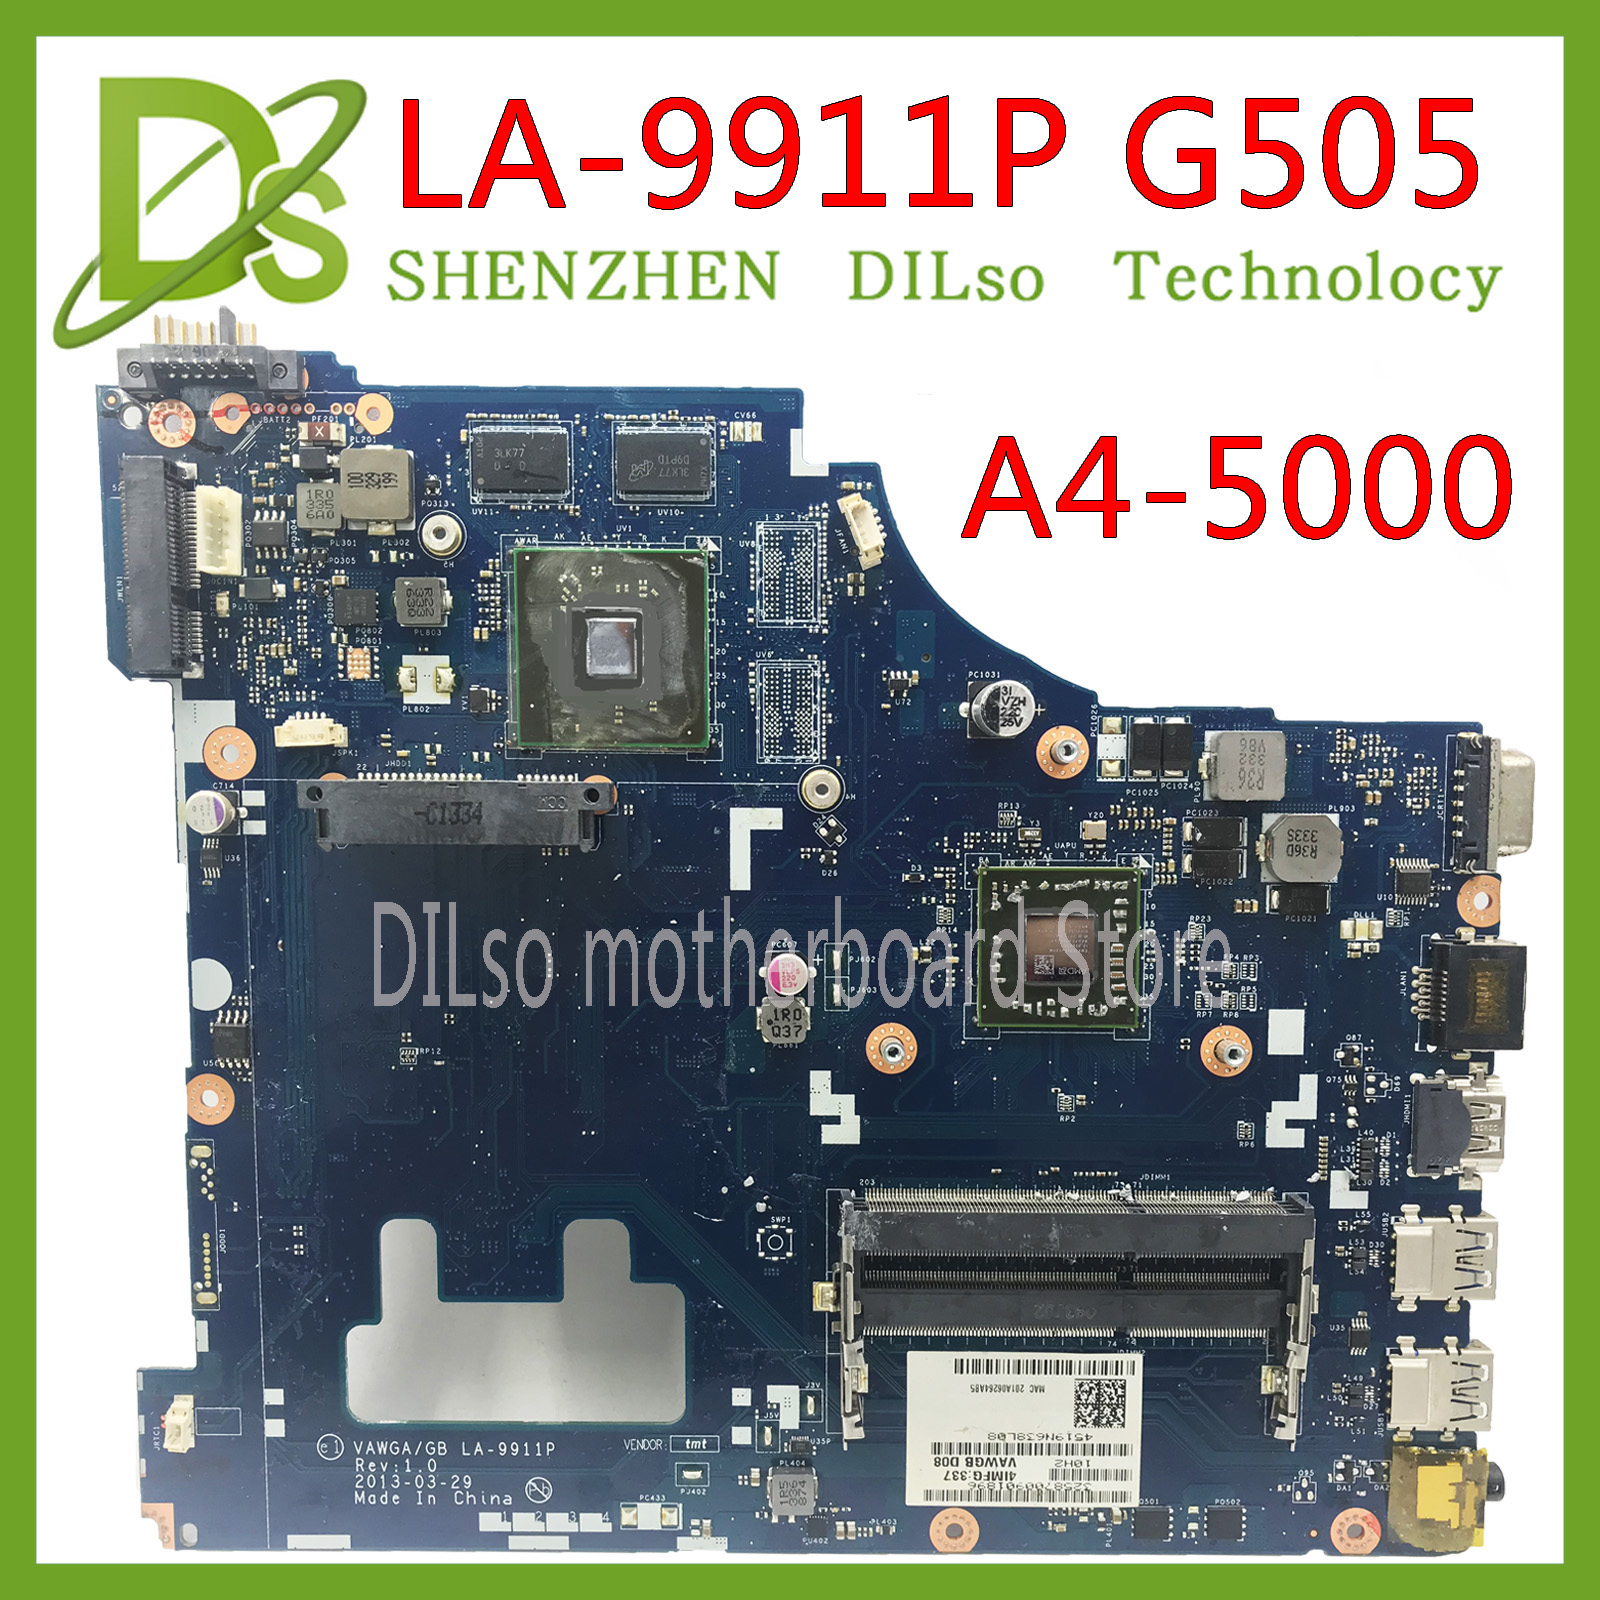 KEFU G505 VAWGA/GB LA-9911P Motherboard For Lenovo G505 Motherboard La-9911p Motherboard With A4 CPU Test